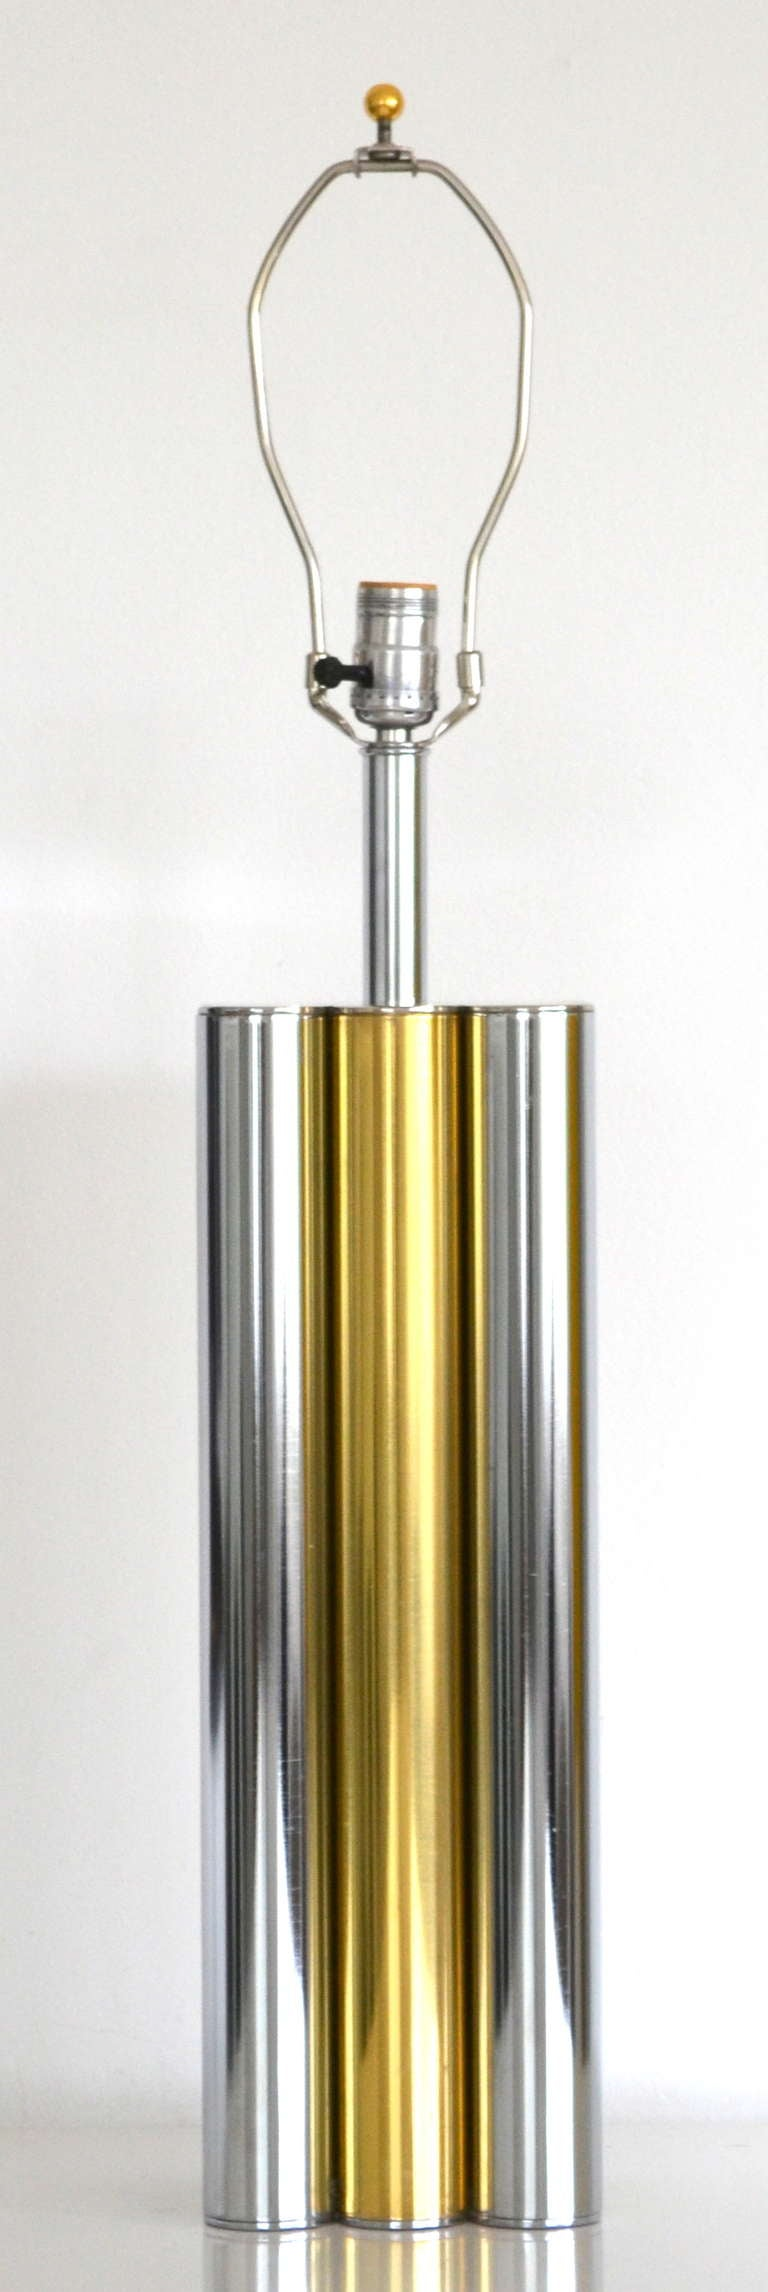 Mid-Century Modern Chrome and Brass Table Lamp at 1stdibs